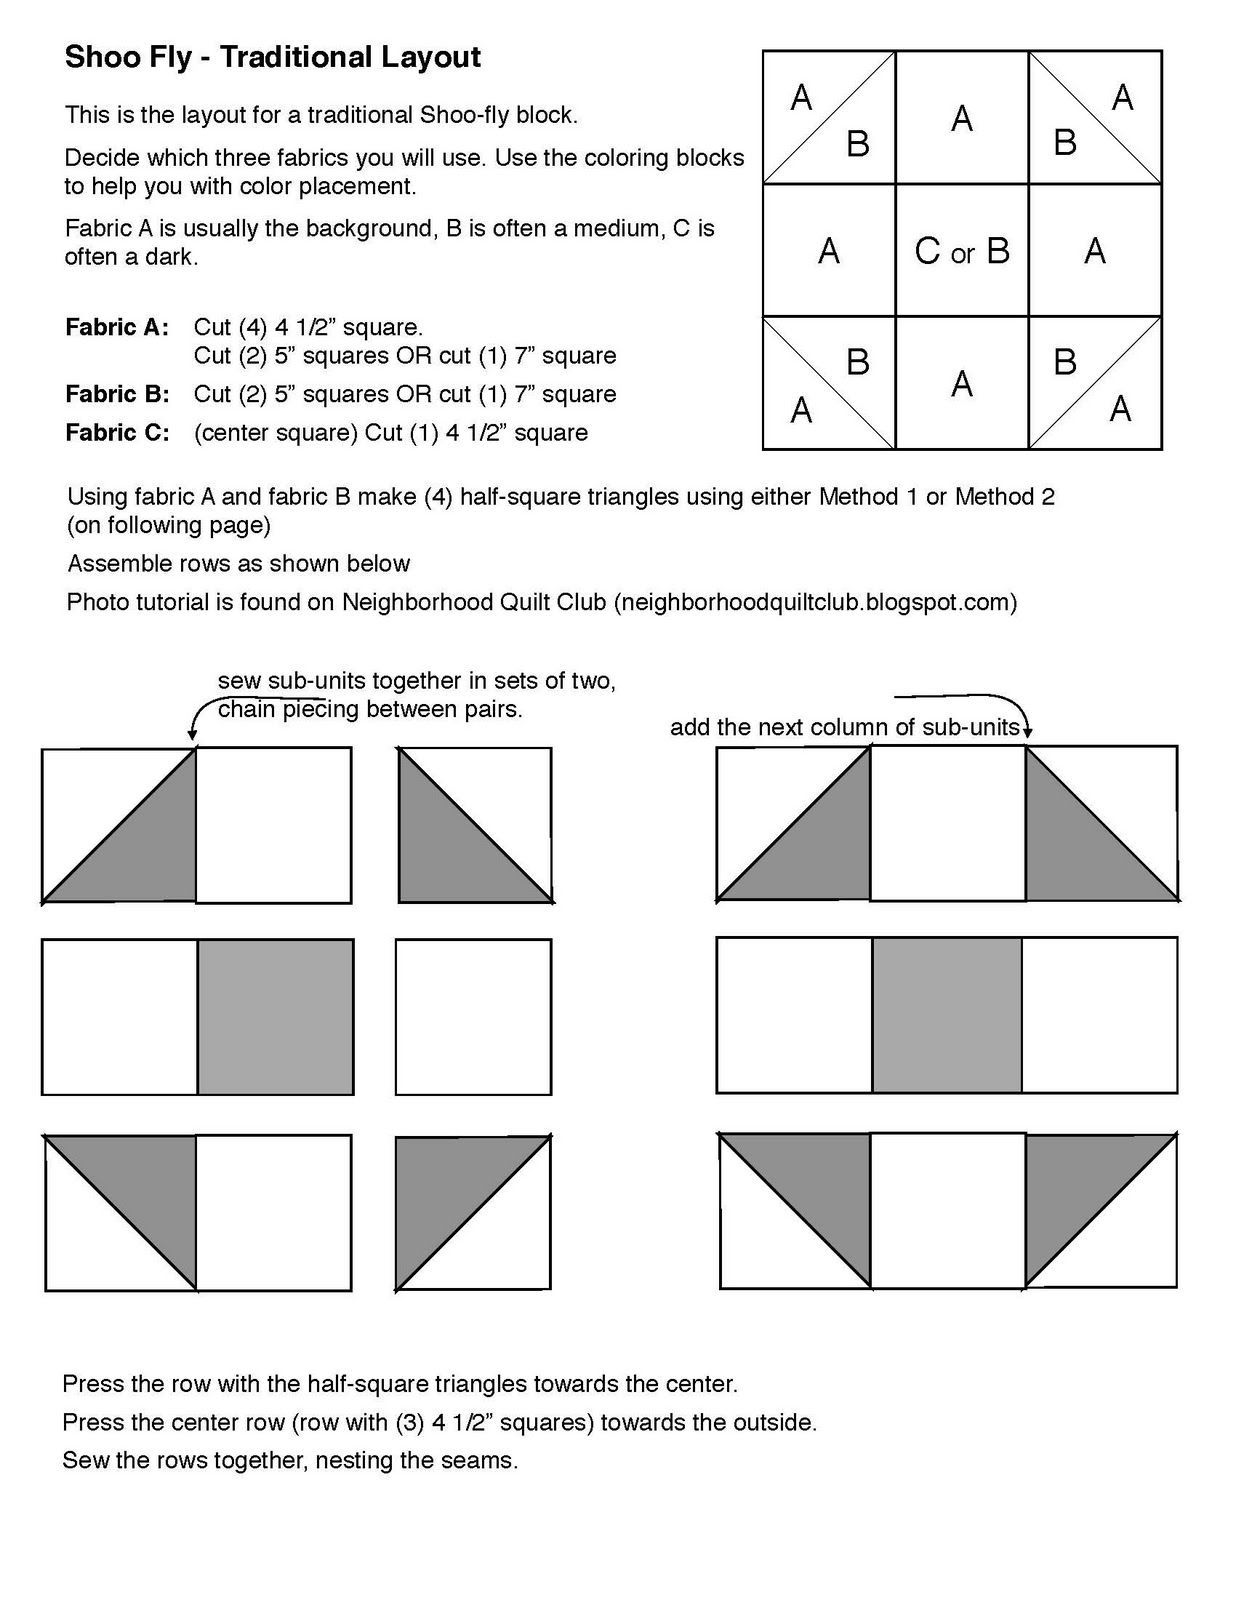 Shoo Fly Block Here Are The Instructions For The Shoo Fly Block That Were Given Out At The Class Last Mo Quilt Block Tutorial Quilt Blocks Churn Dash Quilt